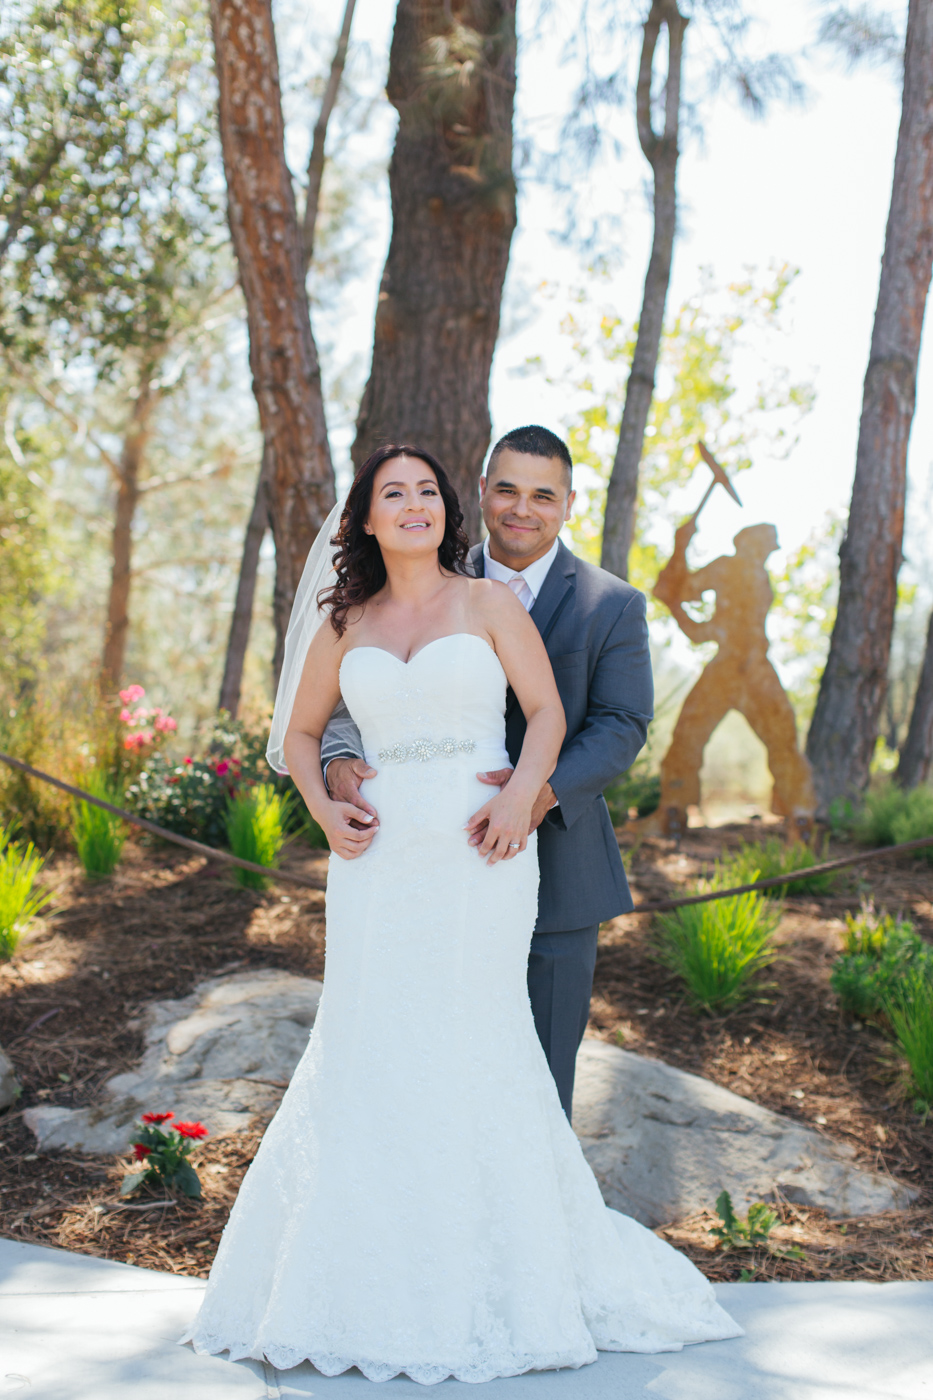 quarry-park-in-rocklin-california-wedding-event-center